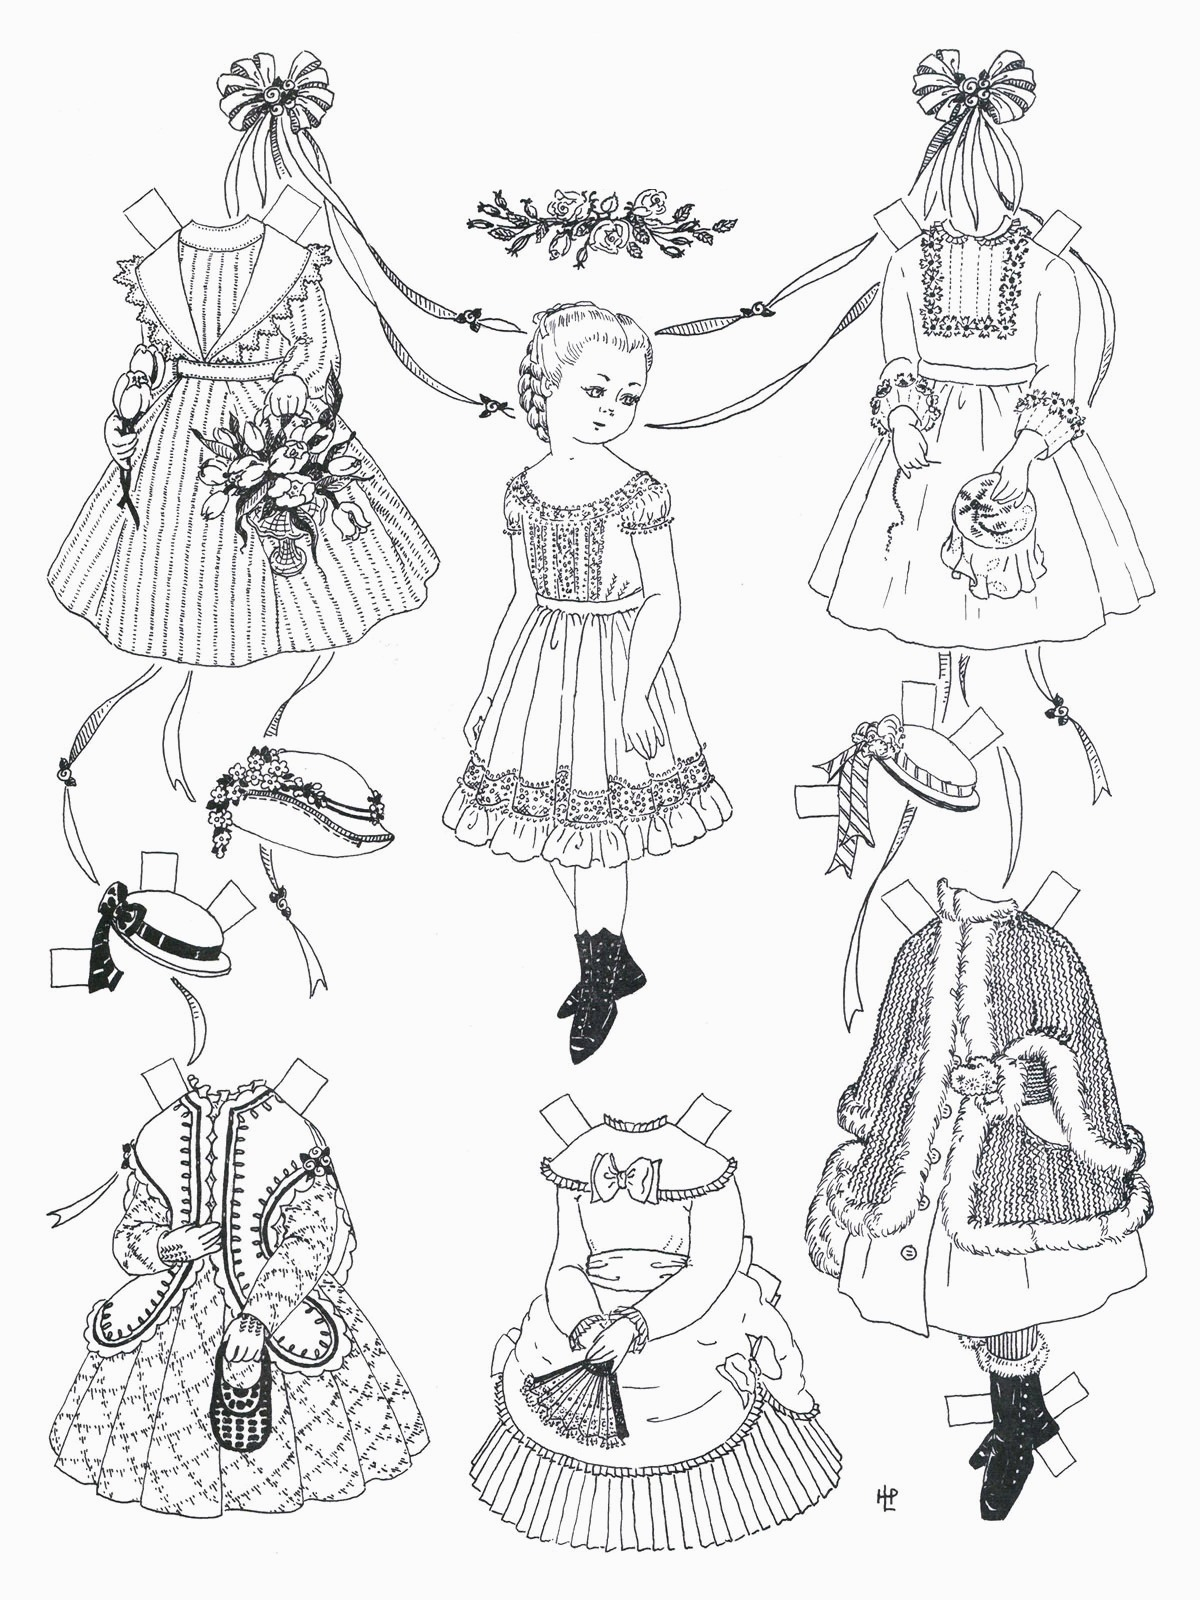 image relating to Free Printable Paper Dolls Black and White called Paper Doll Coloring Web pages Absolutely free Printable Paper Doll Coloring